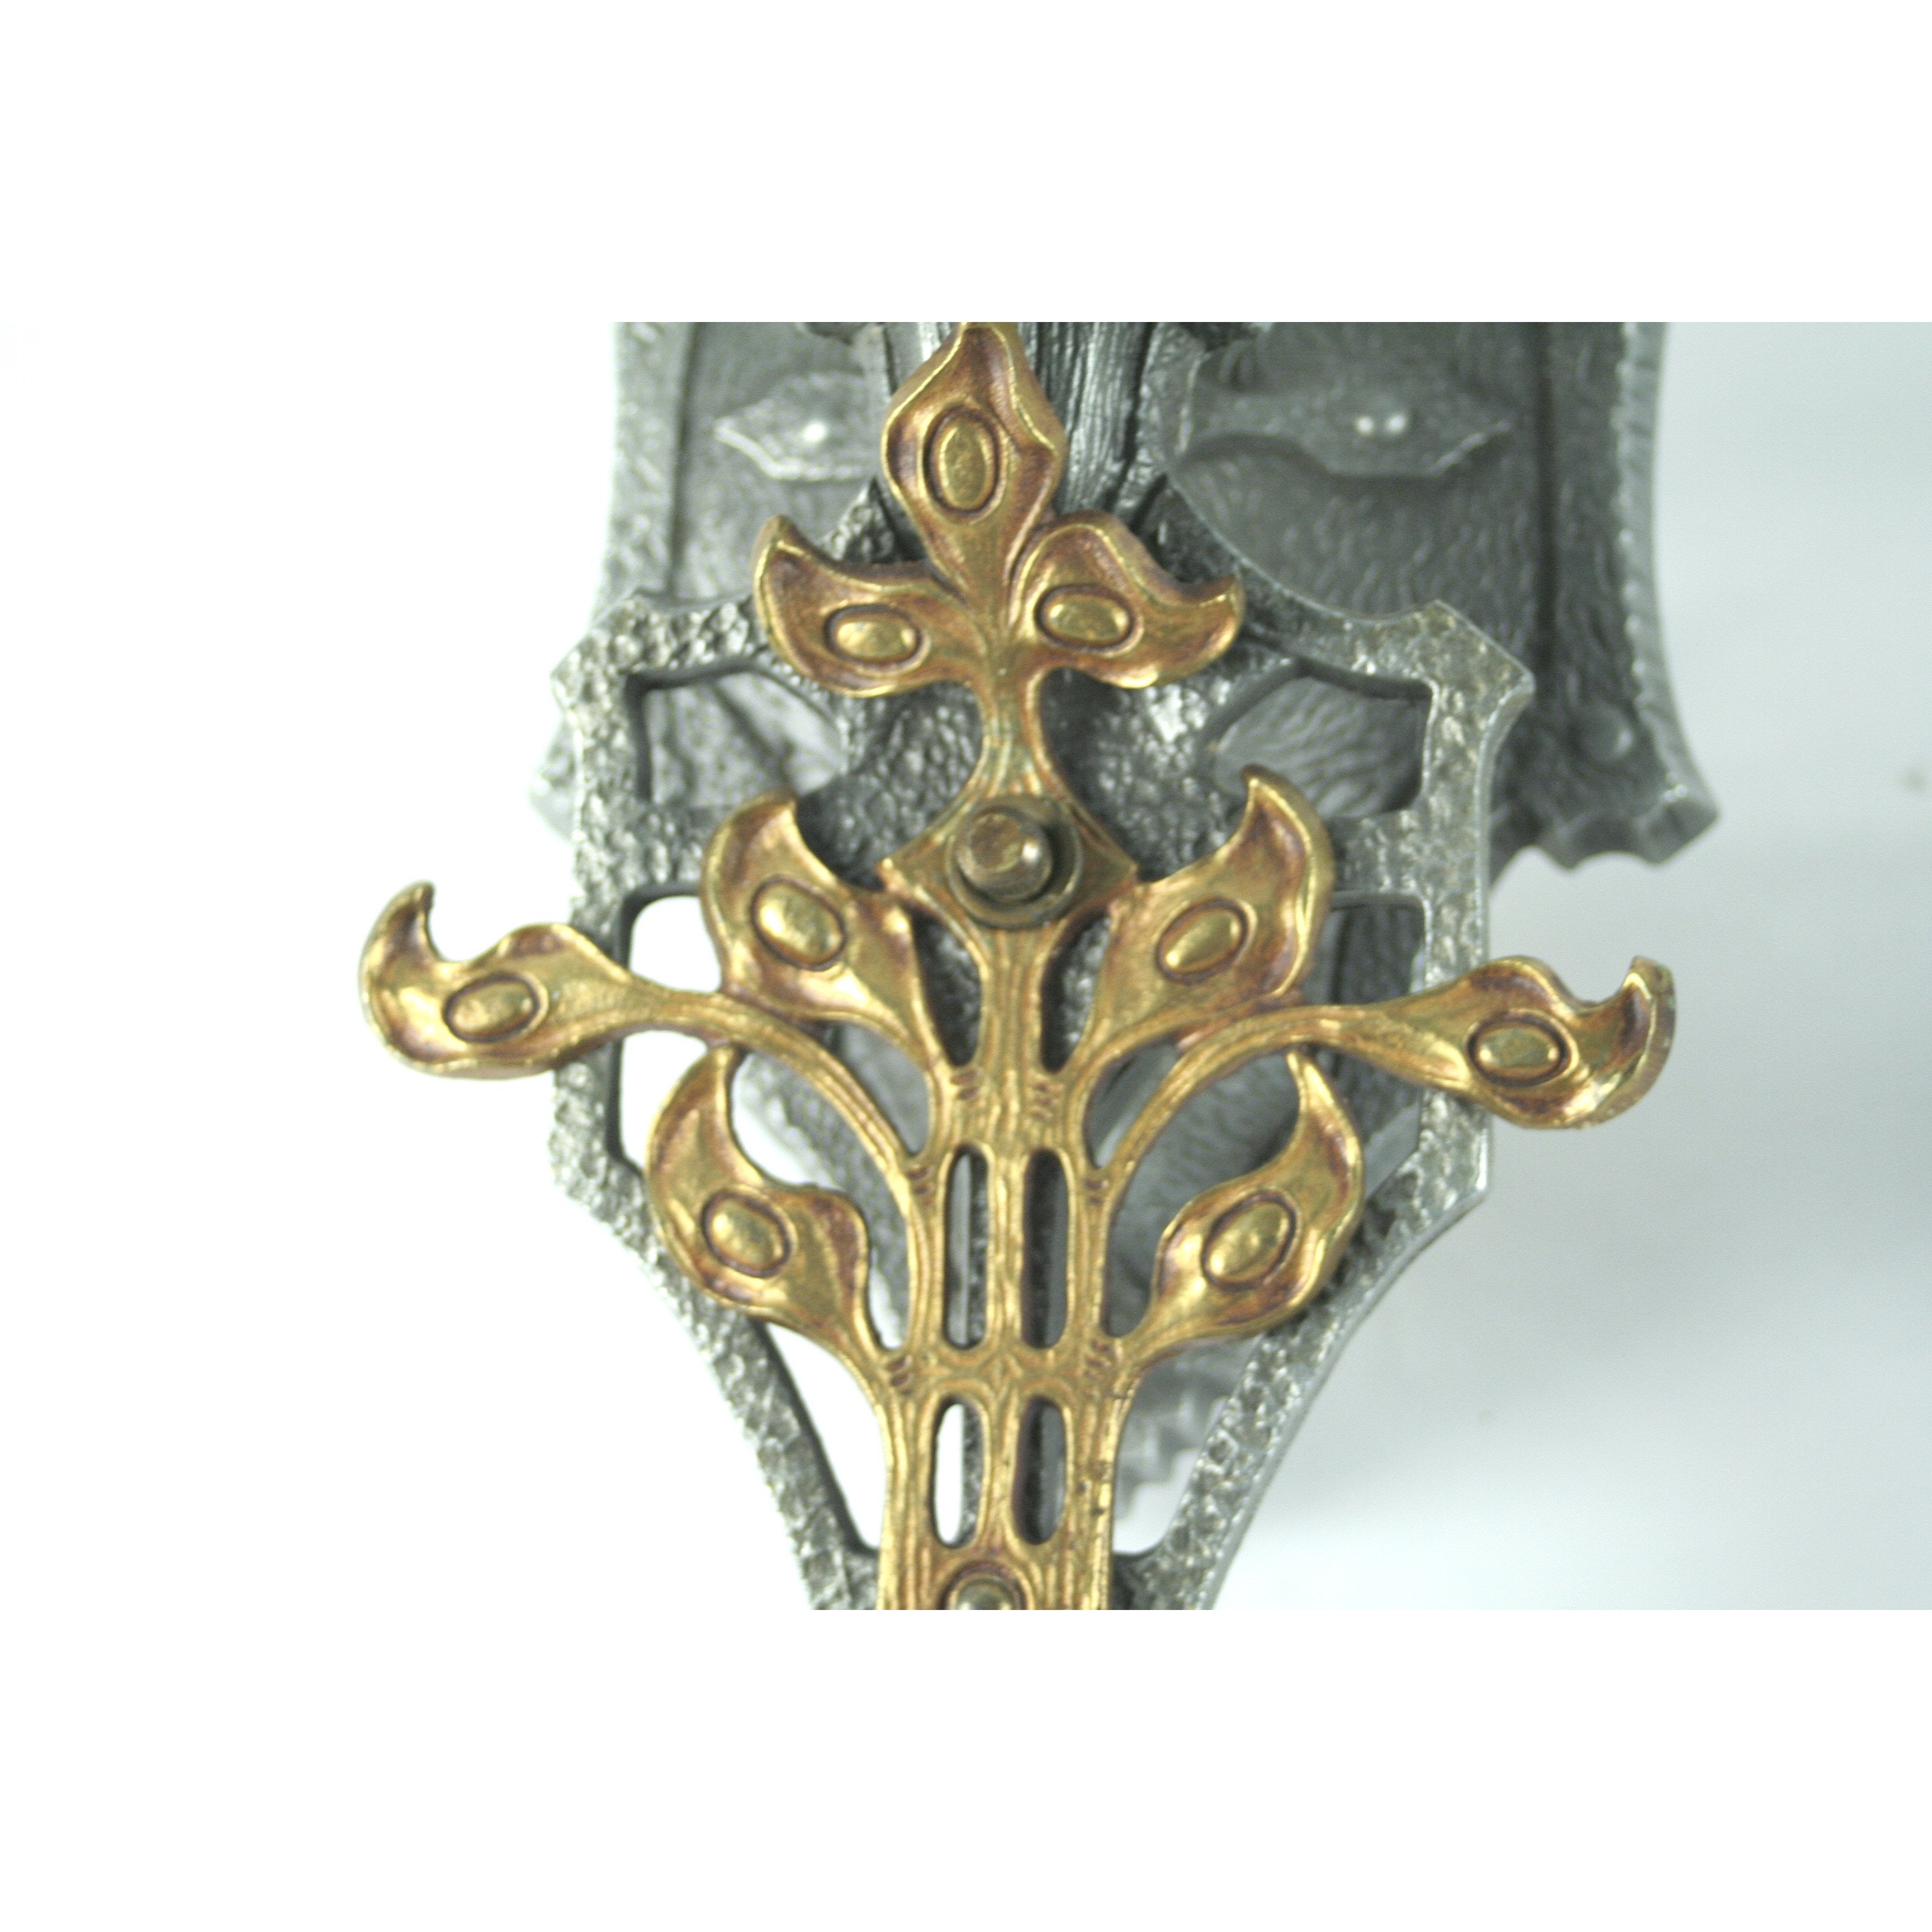 switch and brass overlay on vintage sconce